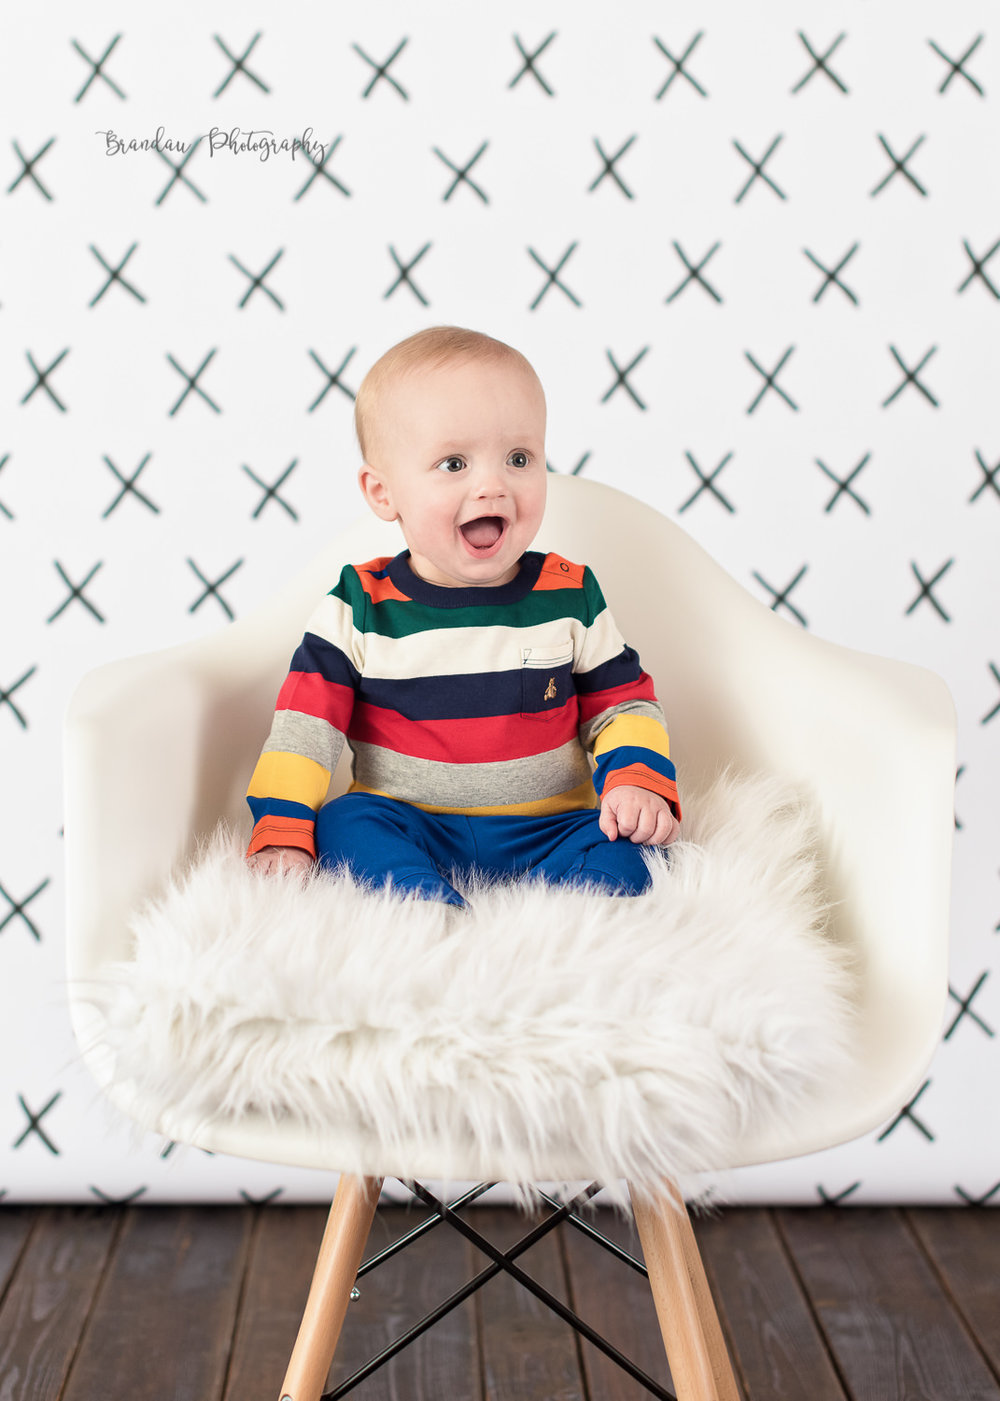 Boy laughing chair_ Brandau Photography.jpg